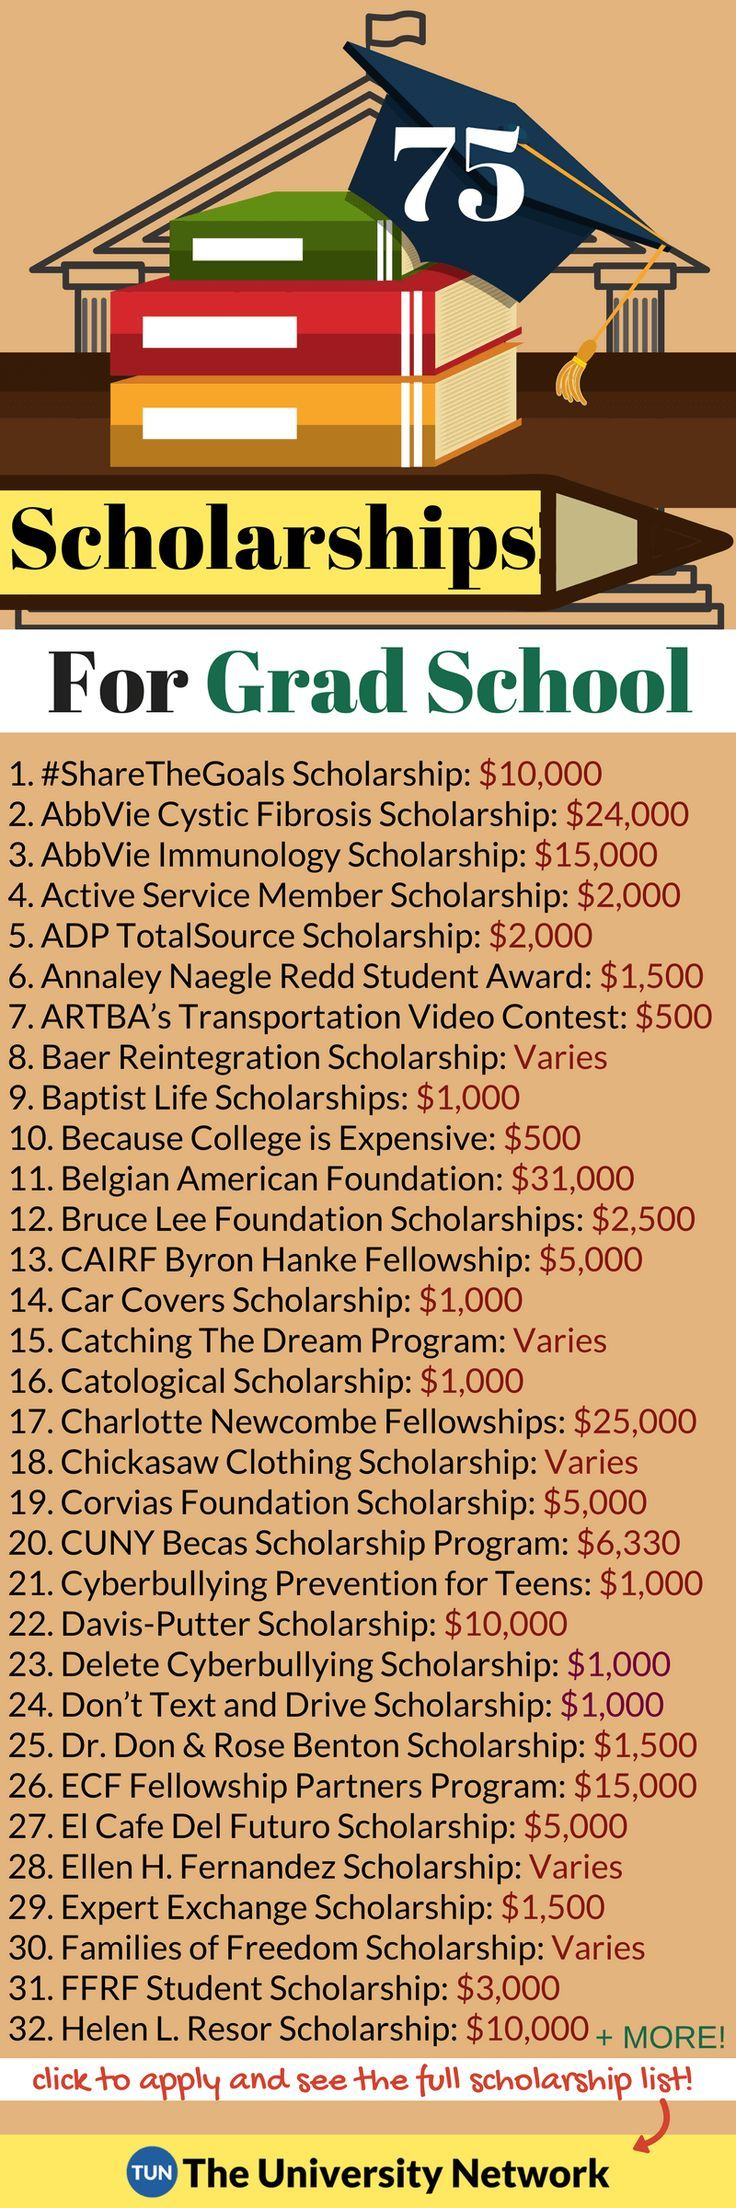 Here is a selection of Scholarships For Graduate Students that are listed on TUN.